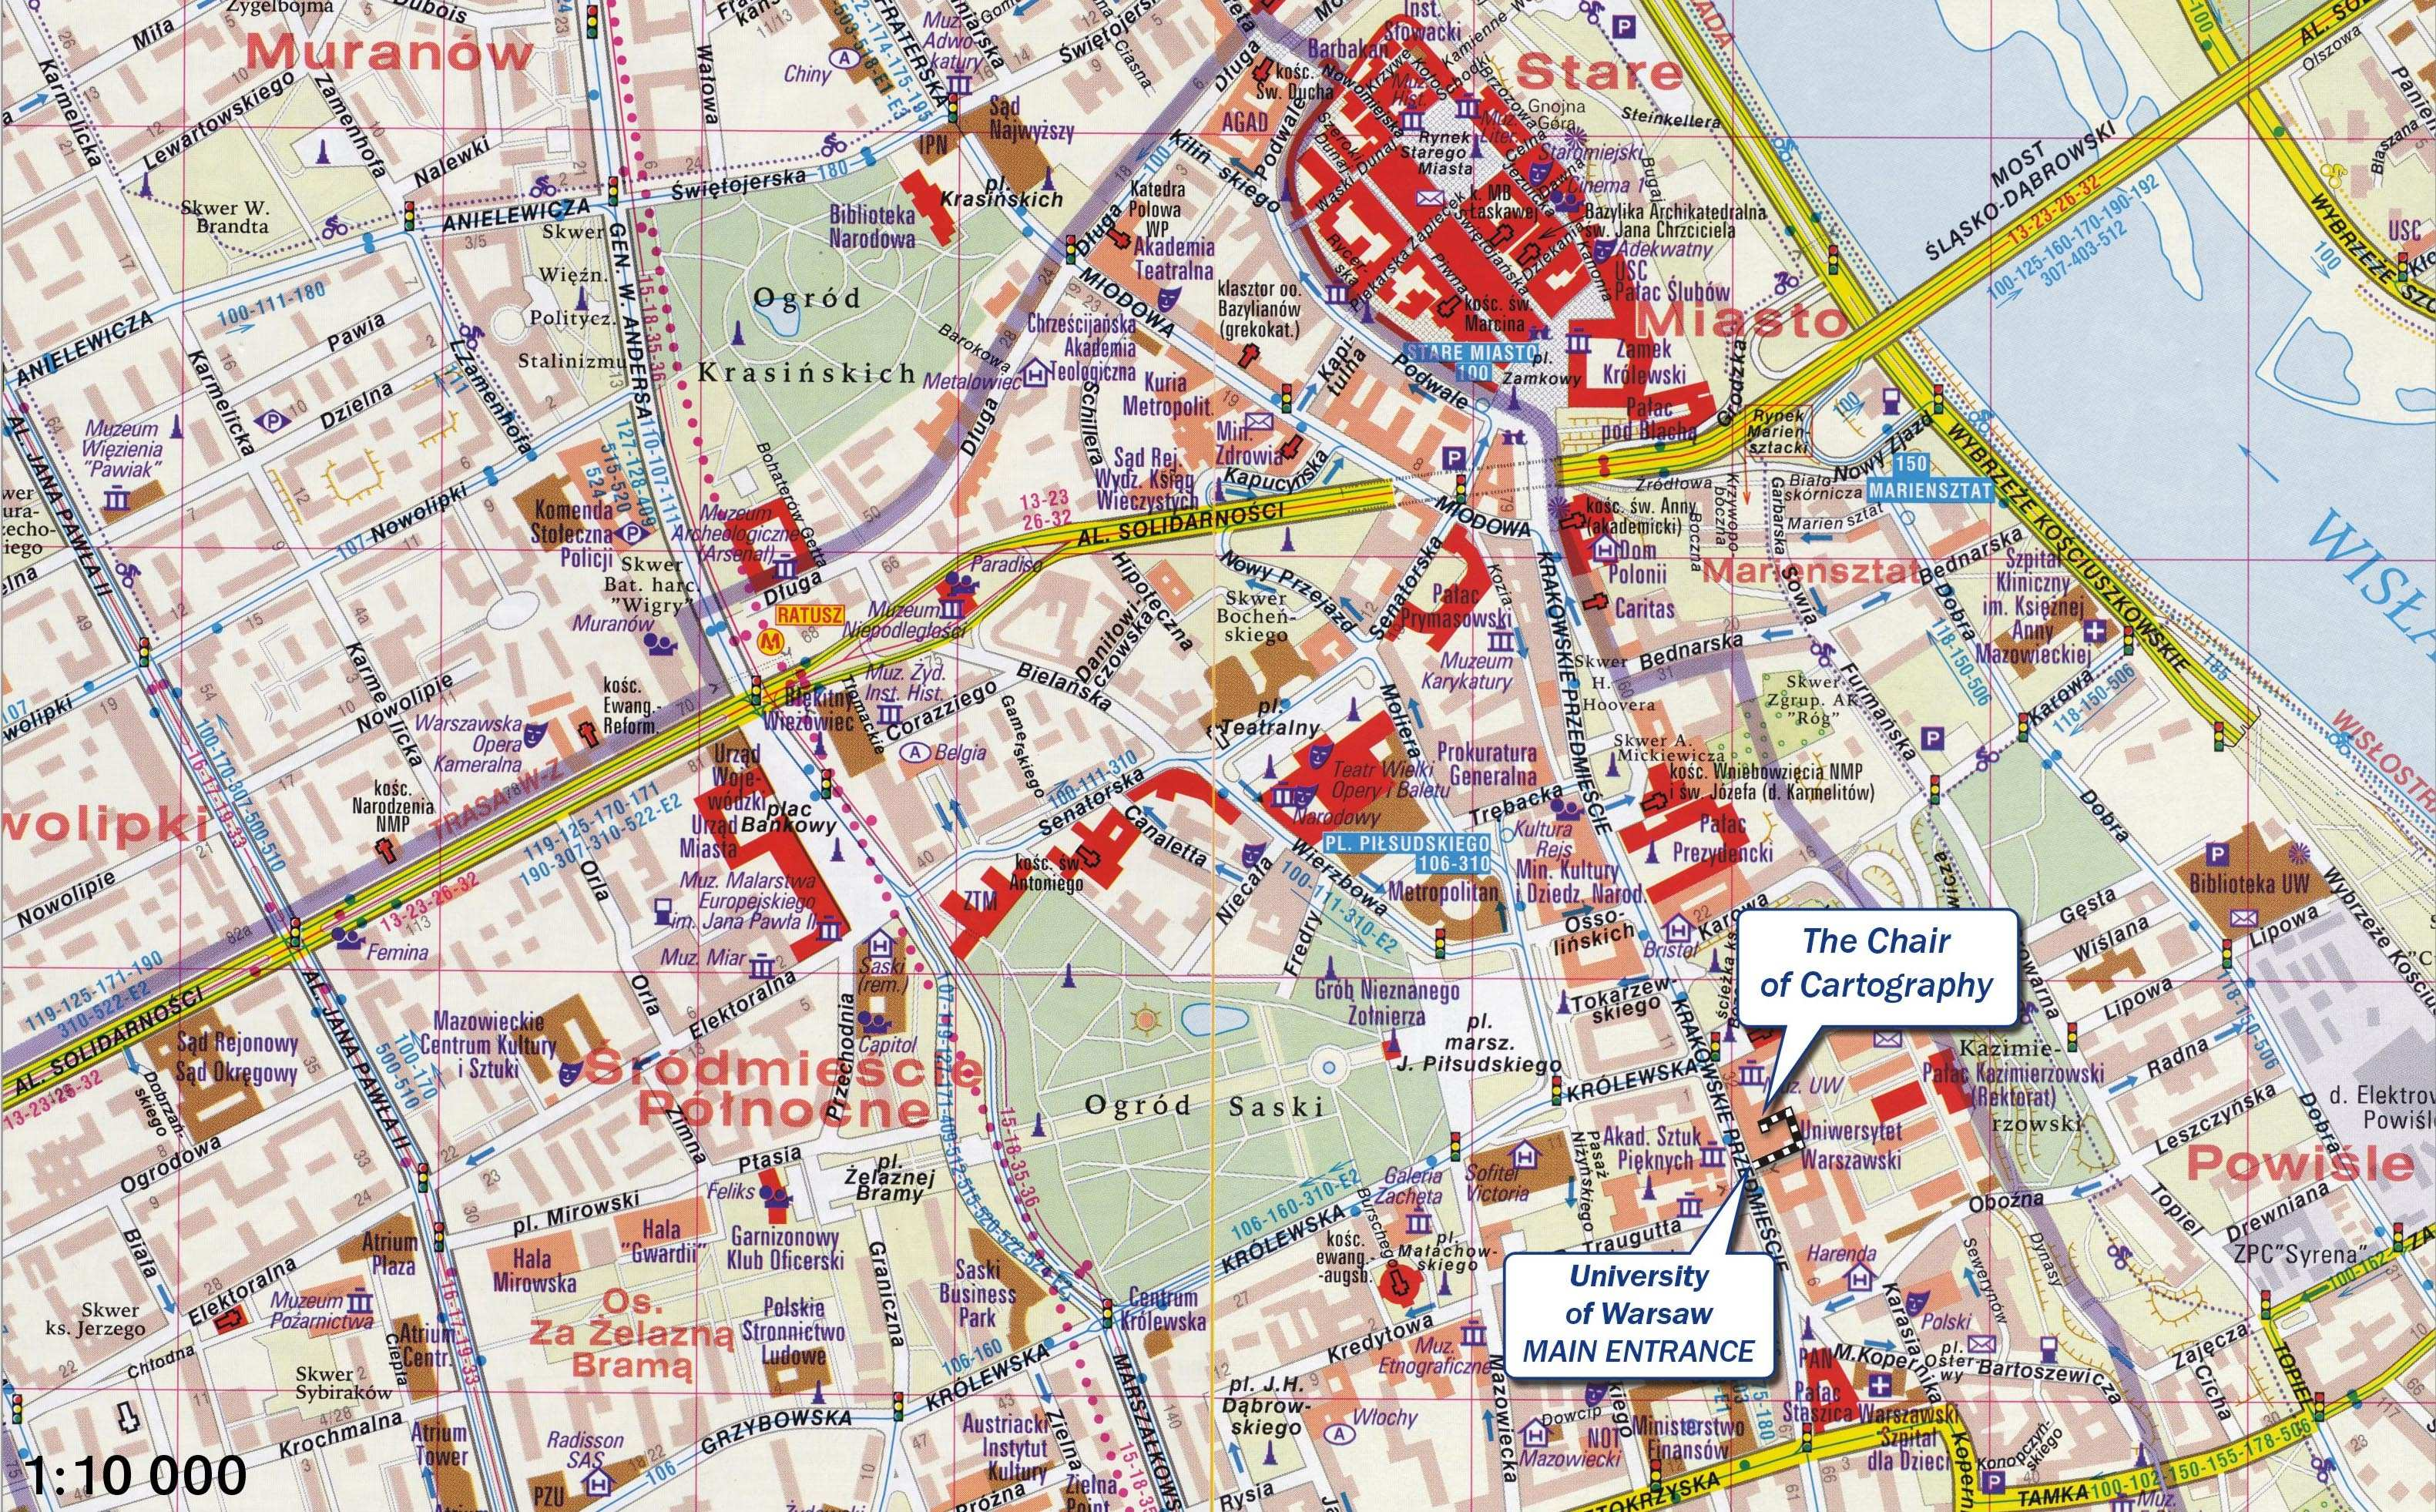 Large Warsaw Maps for Free Download | High-Resolution and Detailed ...